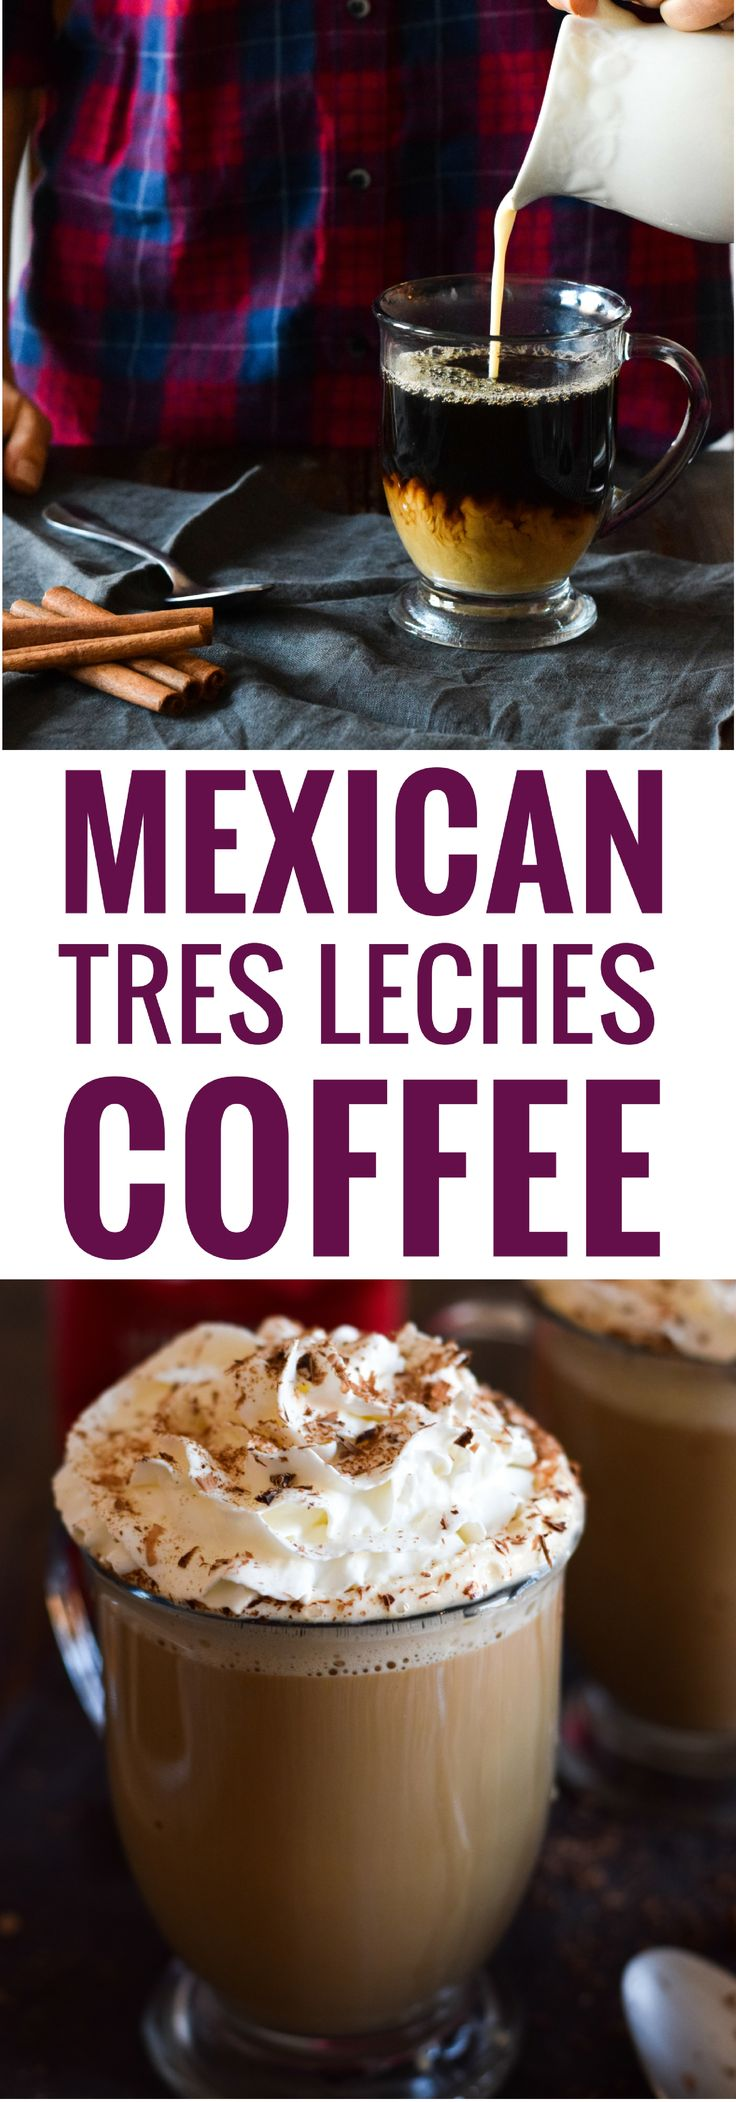 This Mexican Tres Leches Coffee topped with a mountain of whipped cream, cinnamon and chocolate shavings is easy to make at home and irresistibly yummy! Perfect for the holidays and the cold winter nights! #StarbucksHolidayRecipes #ad